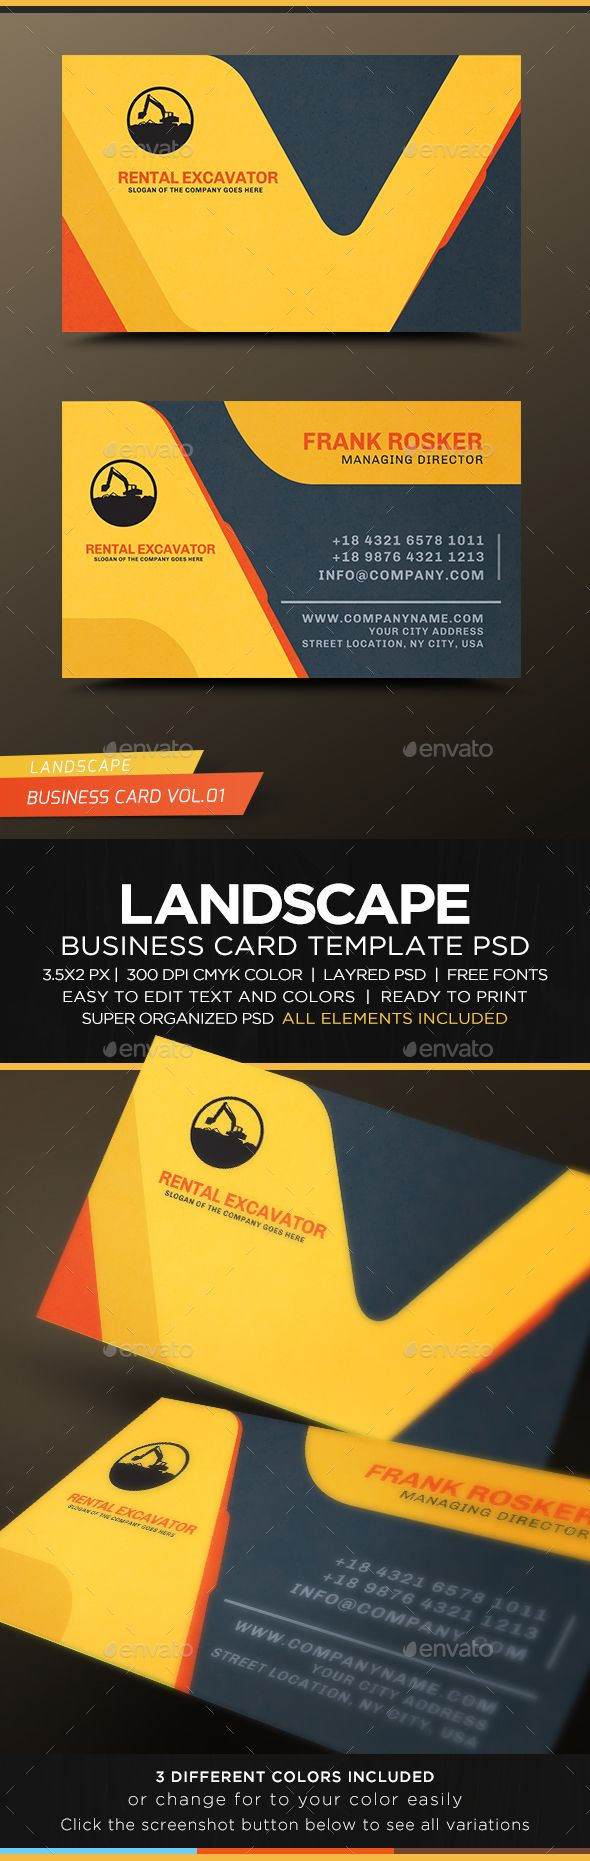 All business cards gallery business card template word 50 best business card designs images on pinterest business card colourmoves